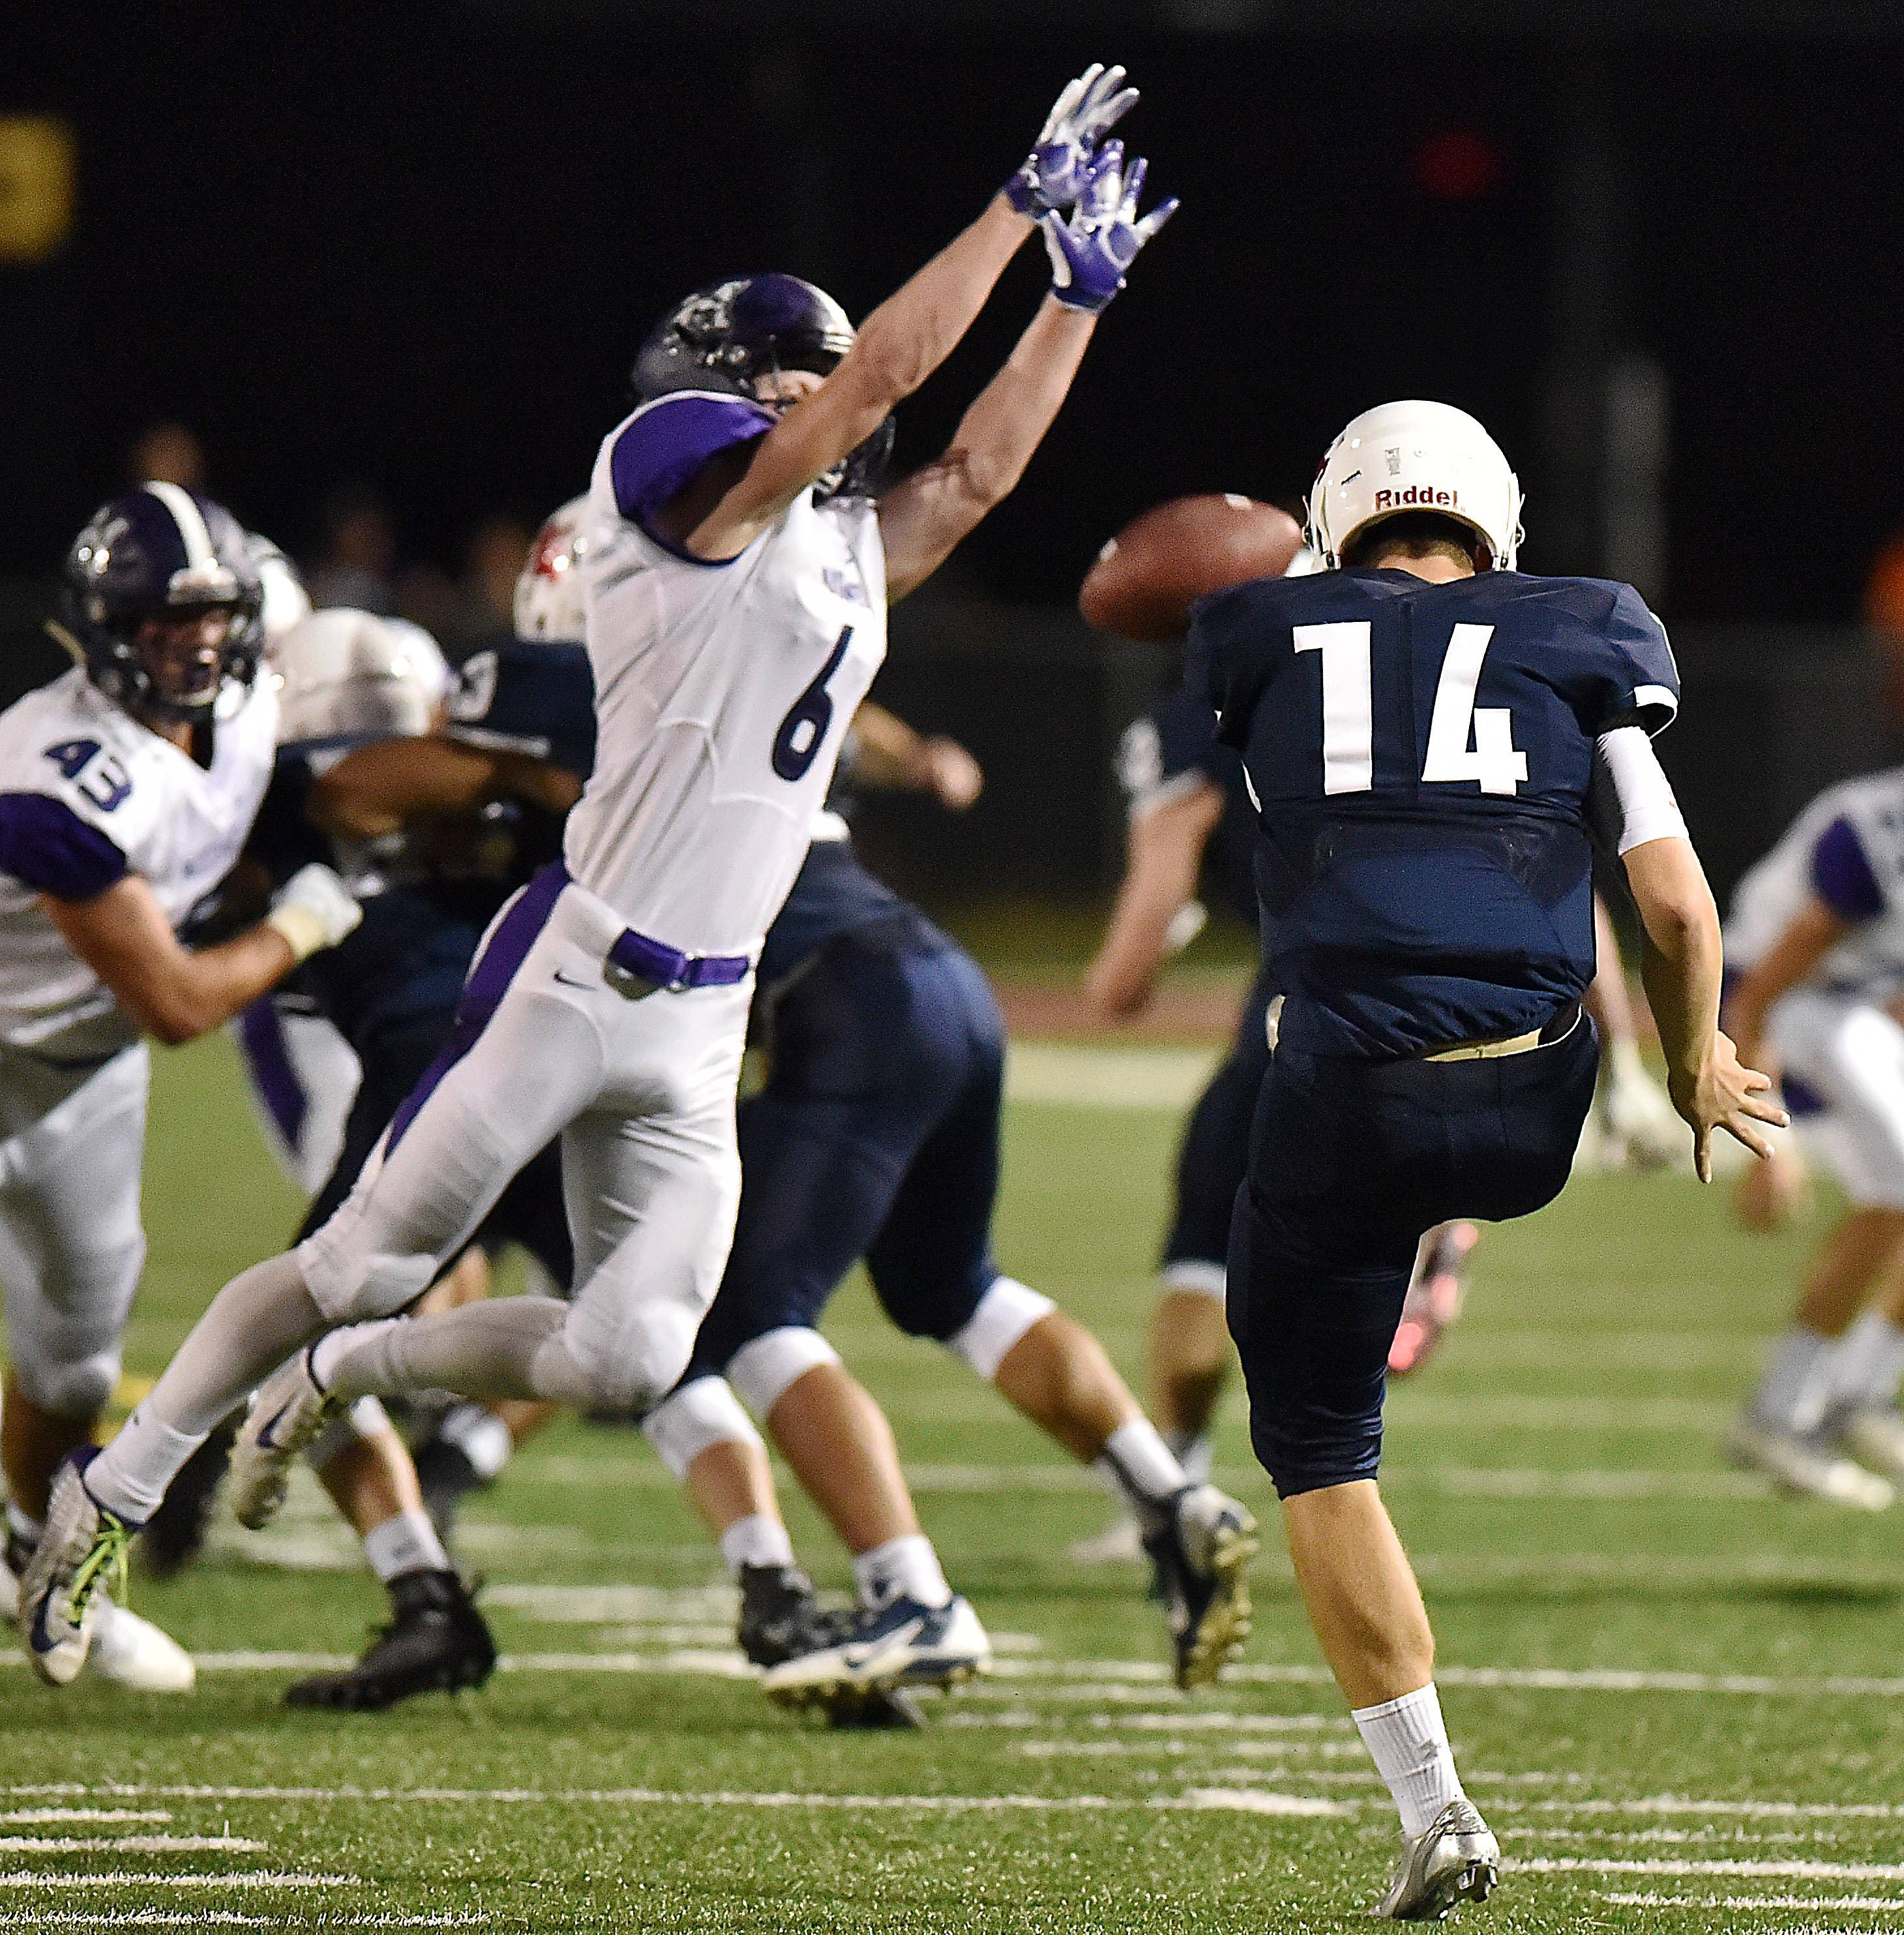 Rolling Meadows' Nick Delporte blocks a punt by St. Viator's Bryce Hellgeth that was then run back for a touchdown by Kevin Haltman on Friday in Arlington Heights.